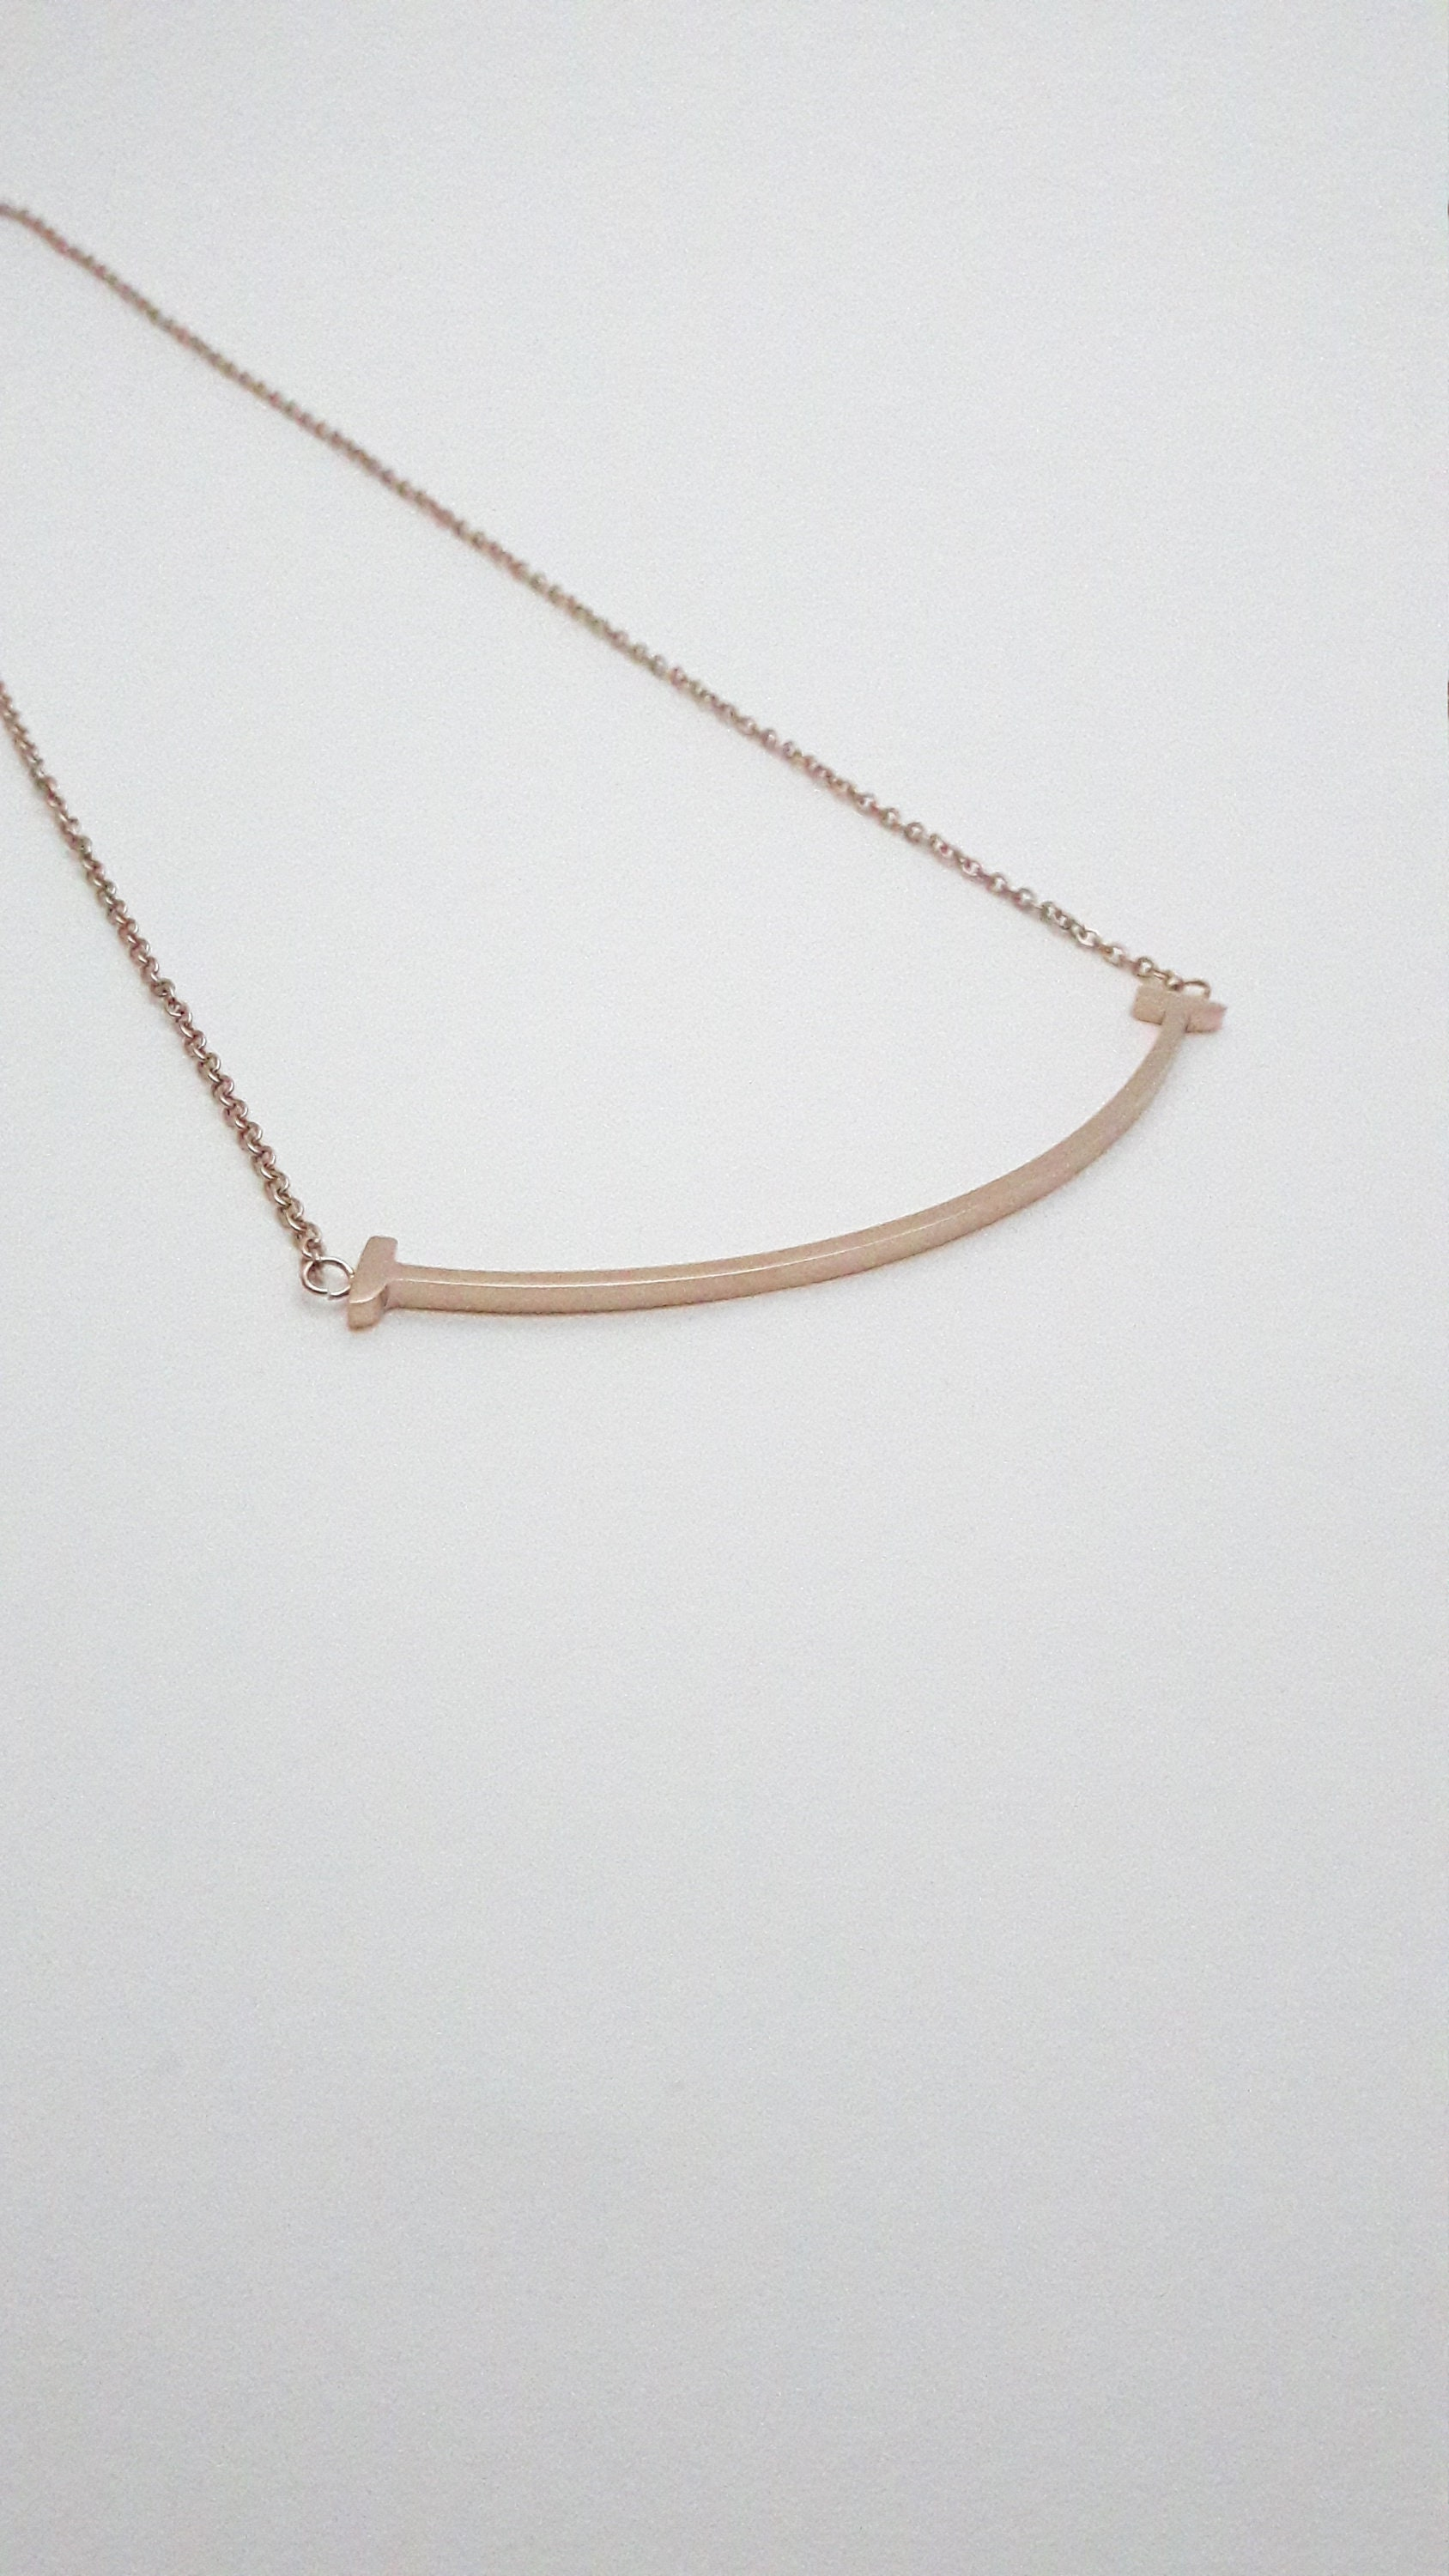 Rose Gold plated Curved Bar Smile Necklace on stainless steel